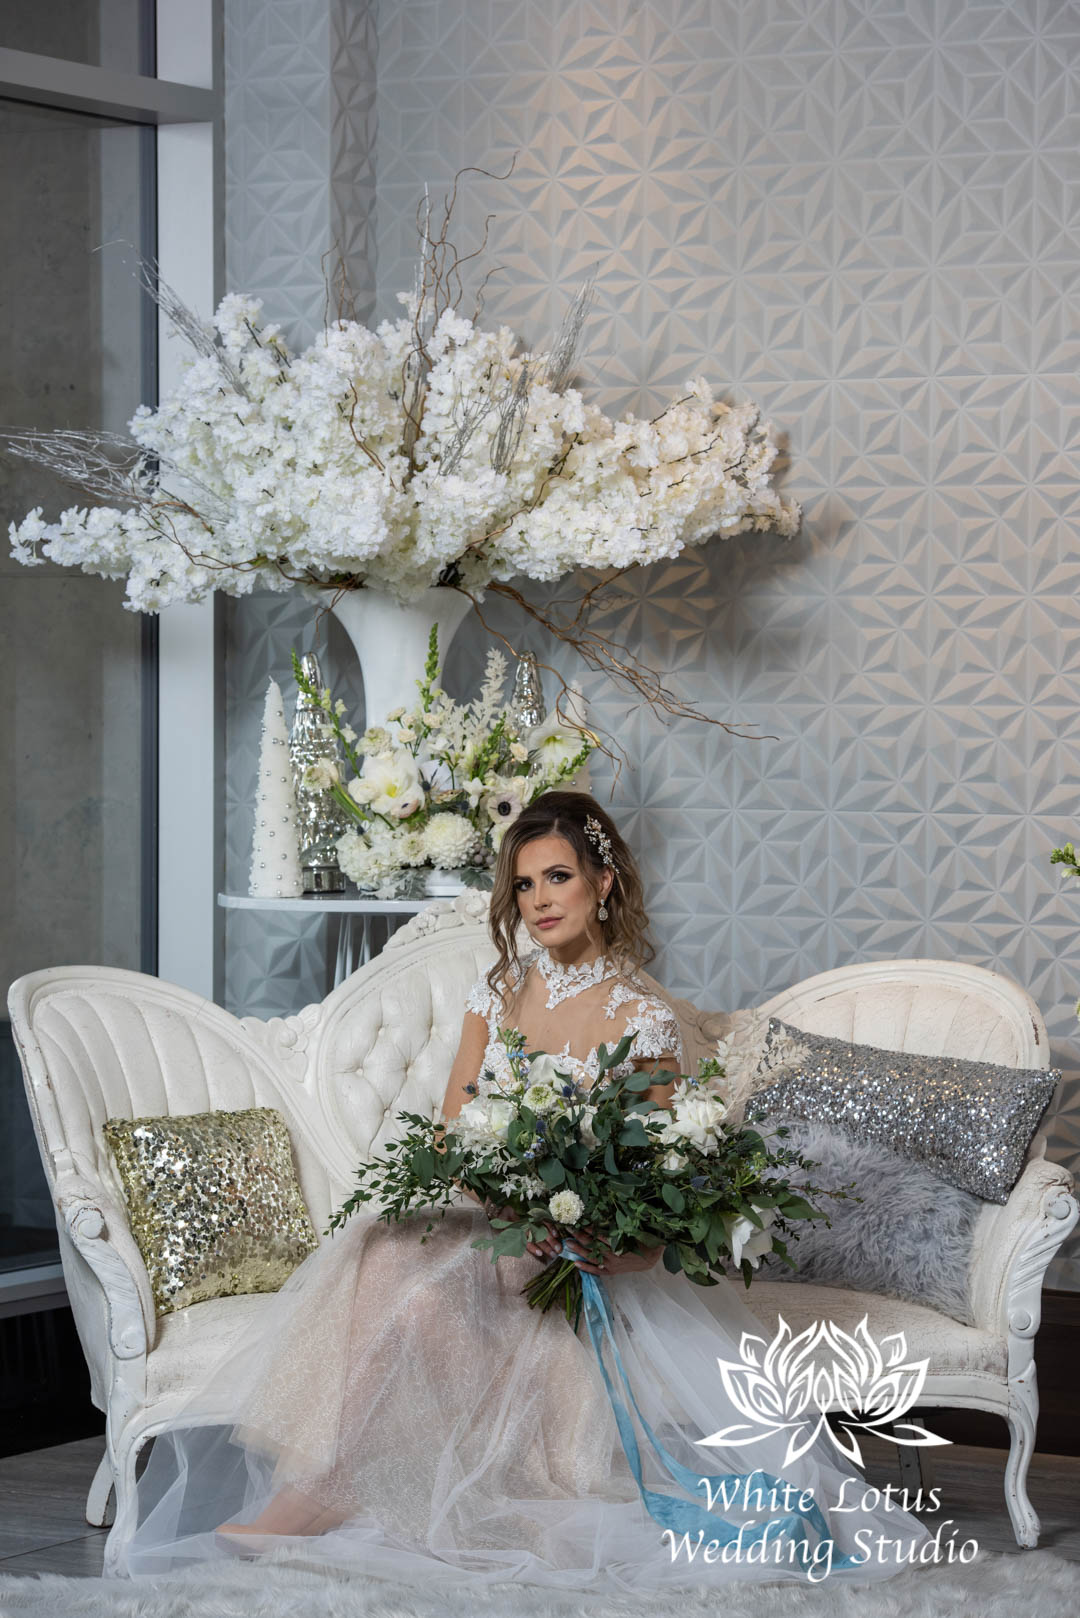 069- GLAM WINTERLUXE WEDDING INSPIRATION